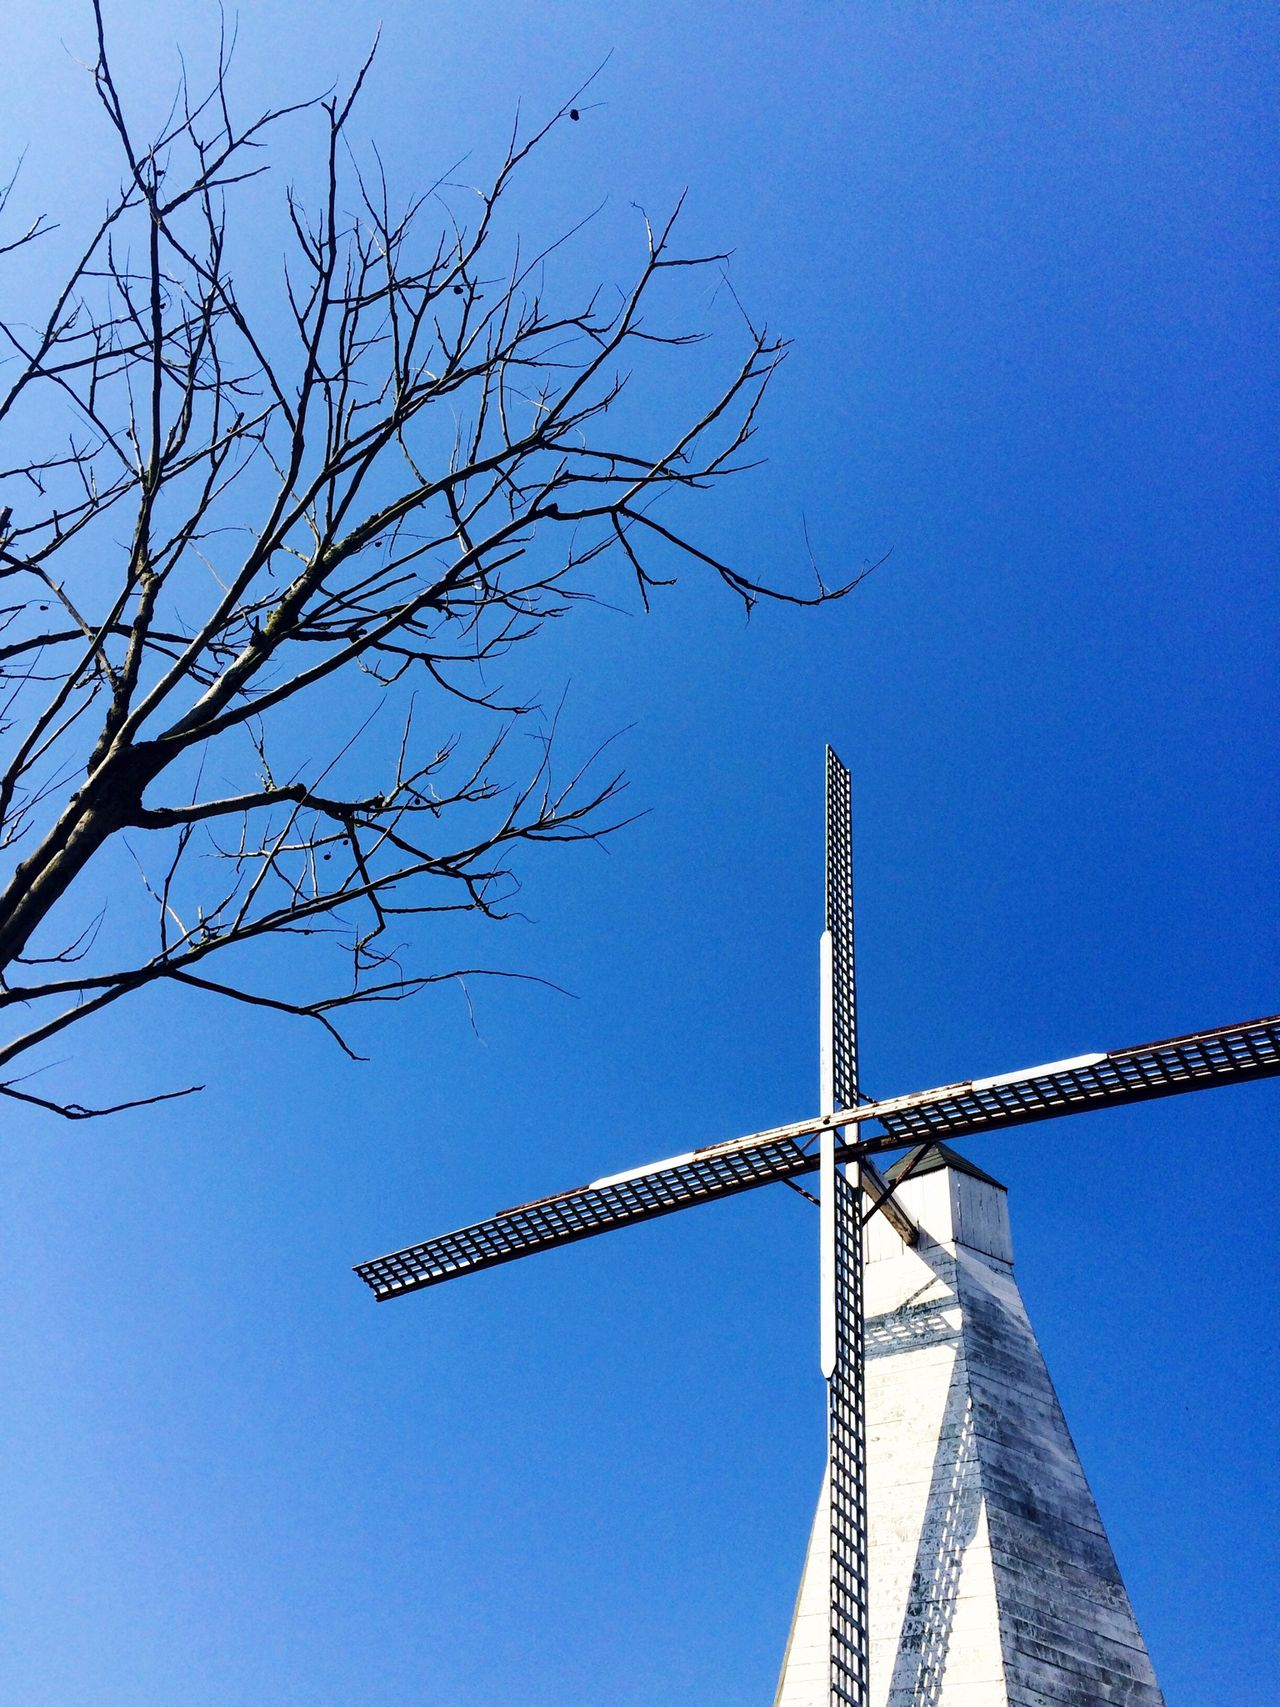 Windmill Sky China Tree Relaxing Enjoying Life Hanging Out Hello World Sunny Day Park The Architect - 2017 EyeEm Awards